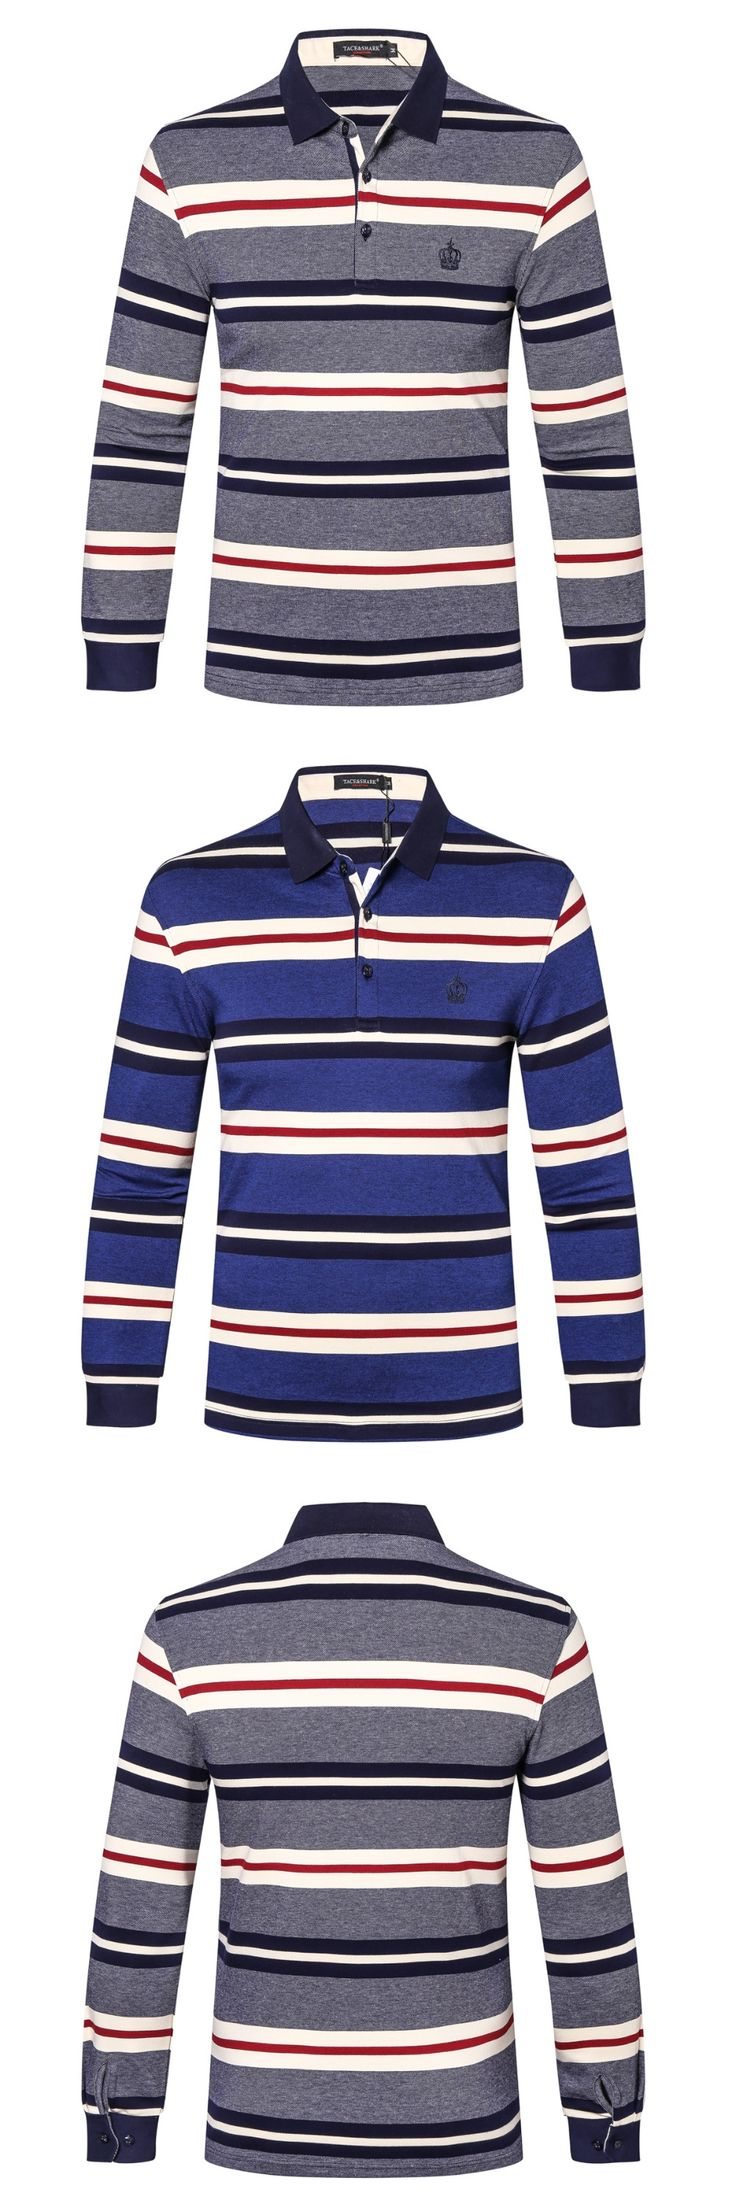 polo shirt men POLO shirt men long sleeveBrand Tace&shark Polo shirt Cotton Lapel business striped embroidery polo shirt